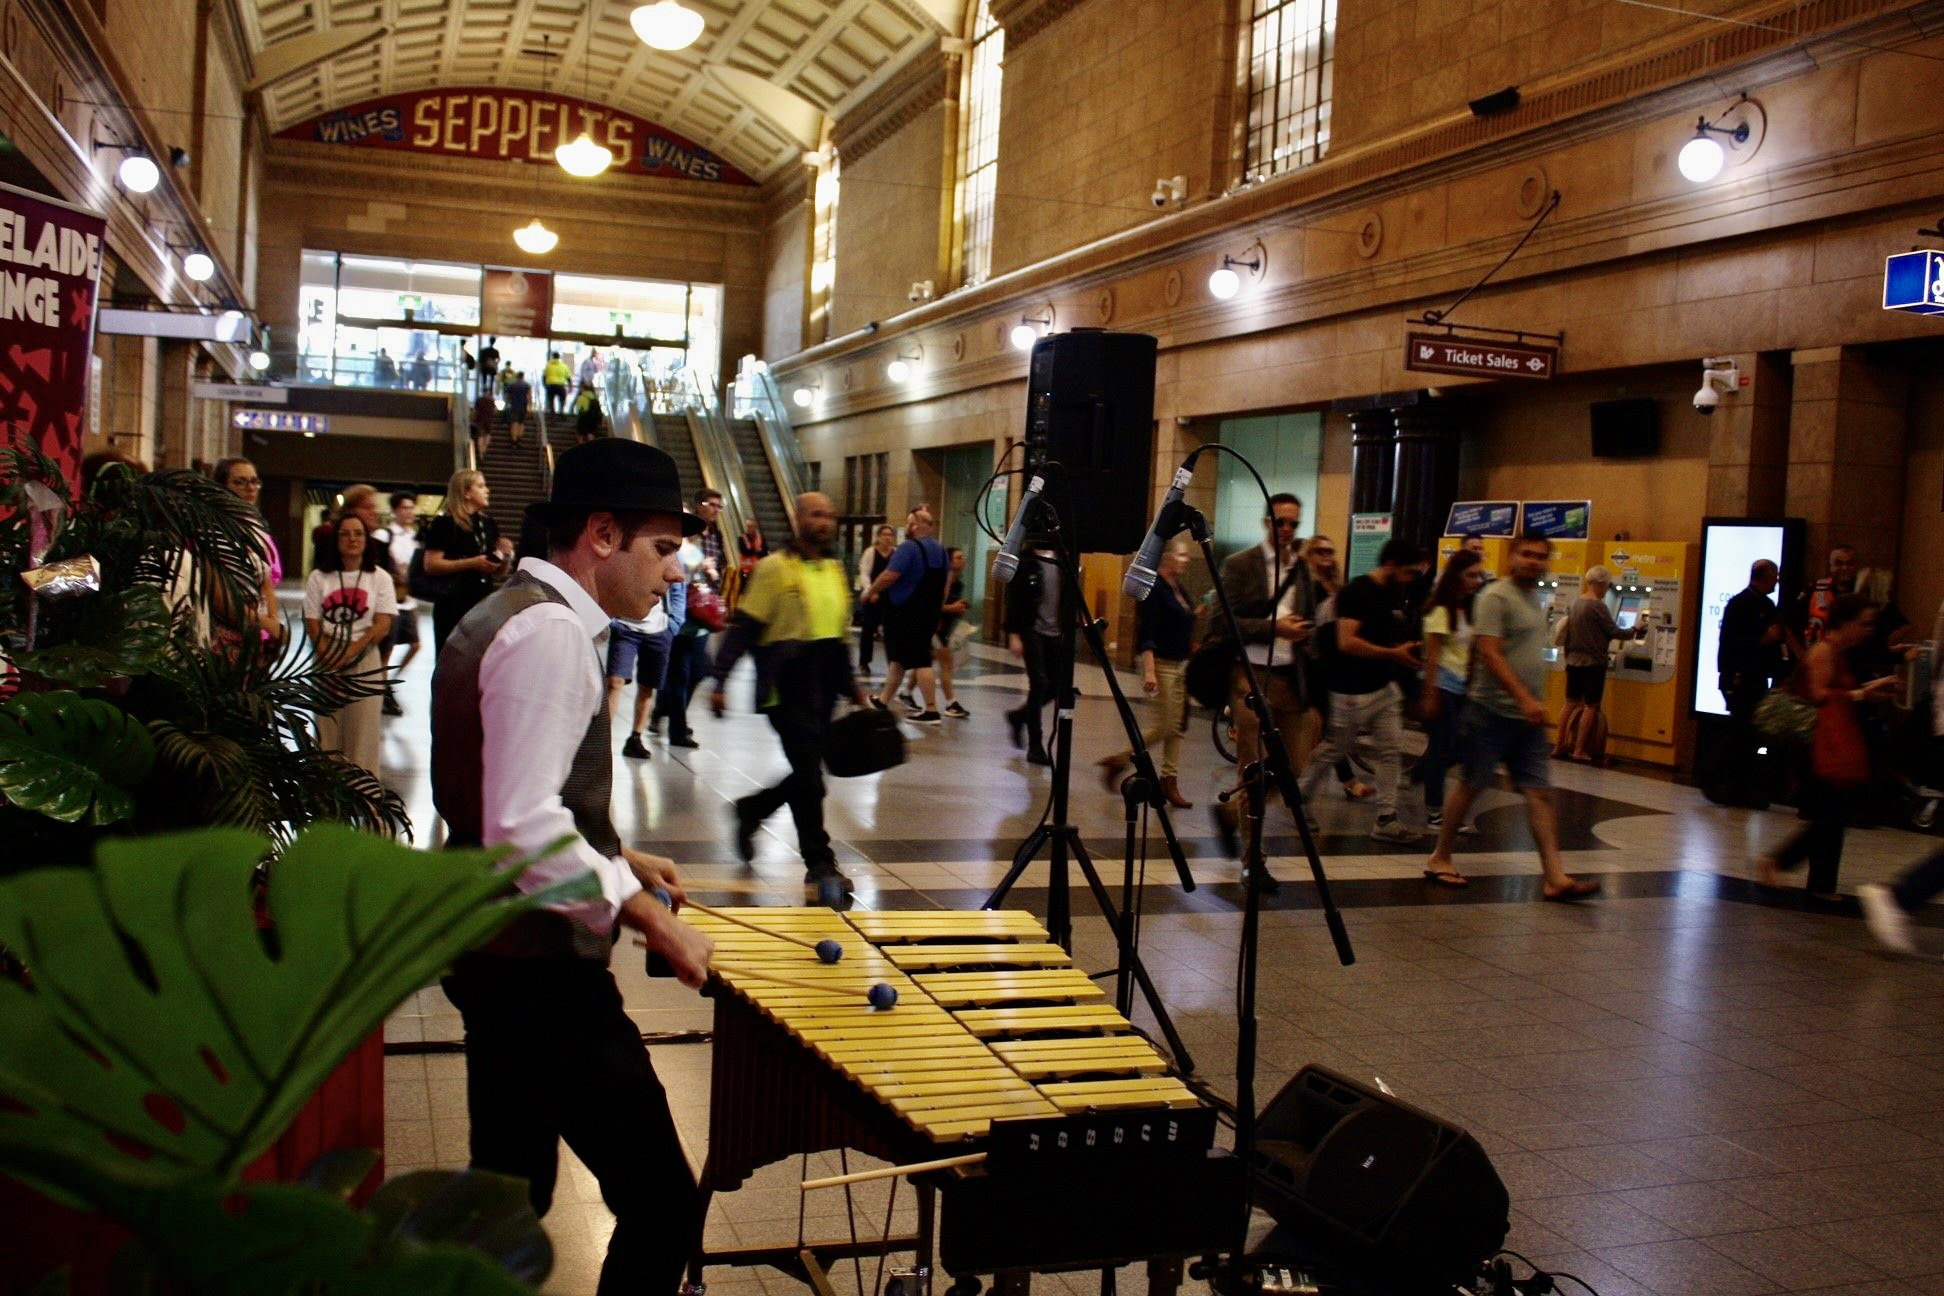 FRINGE PERFORMERS TO SURPRISE TRAIN PASSENGERS AT ADELAIDE RAILWAY STATION